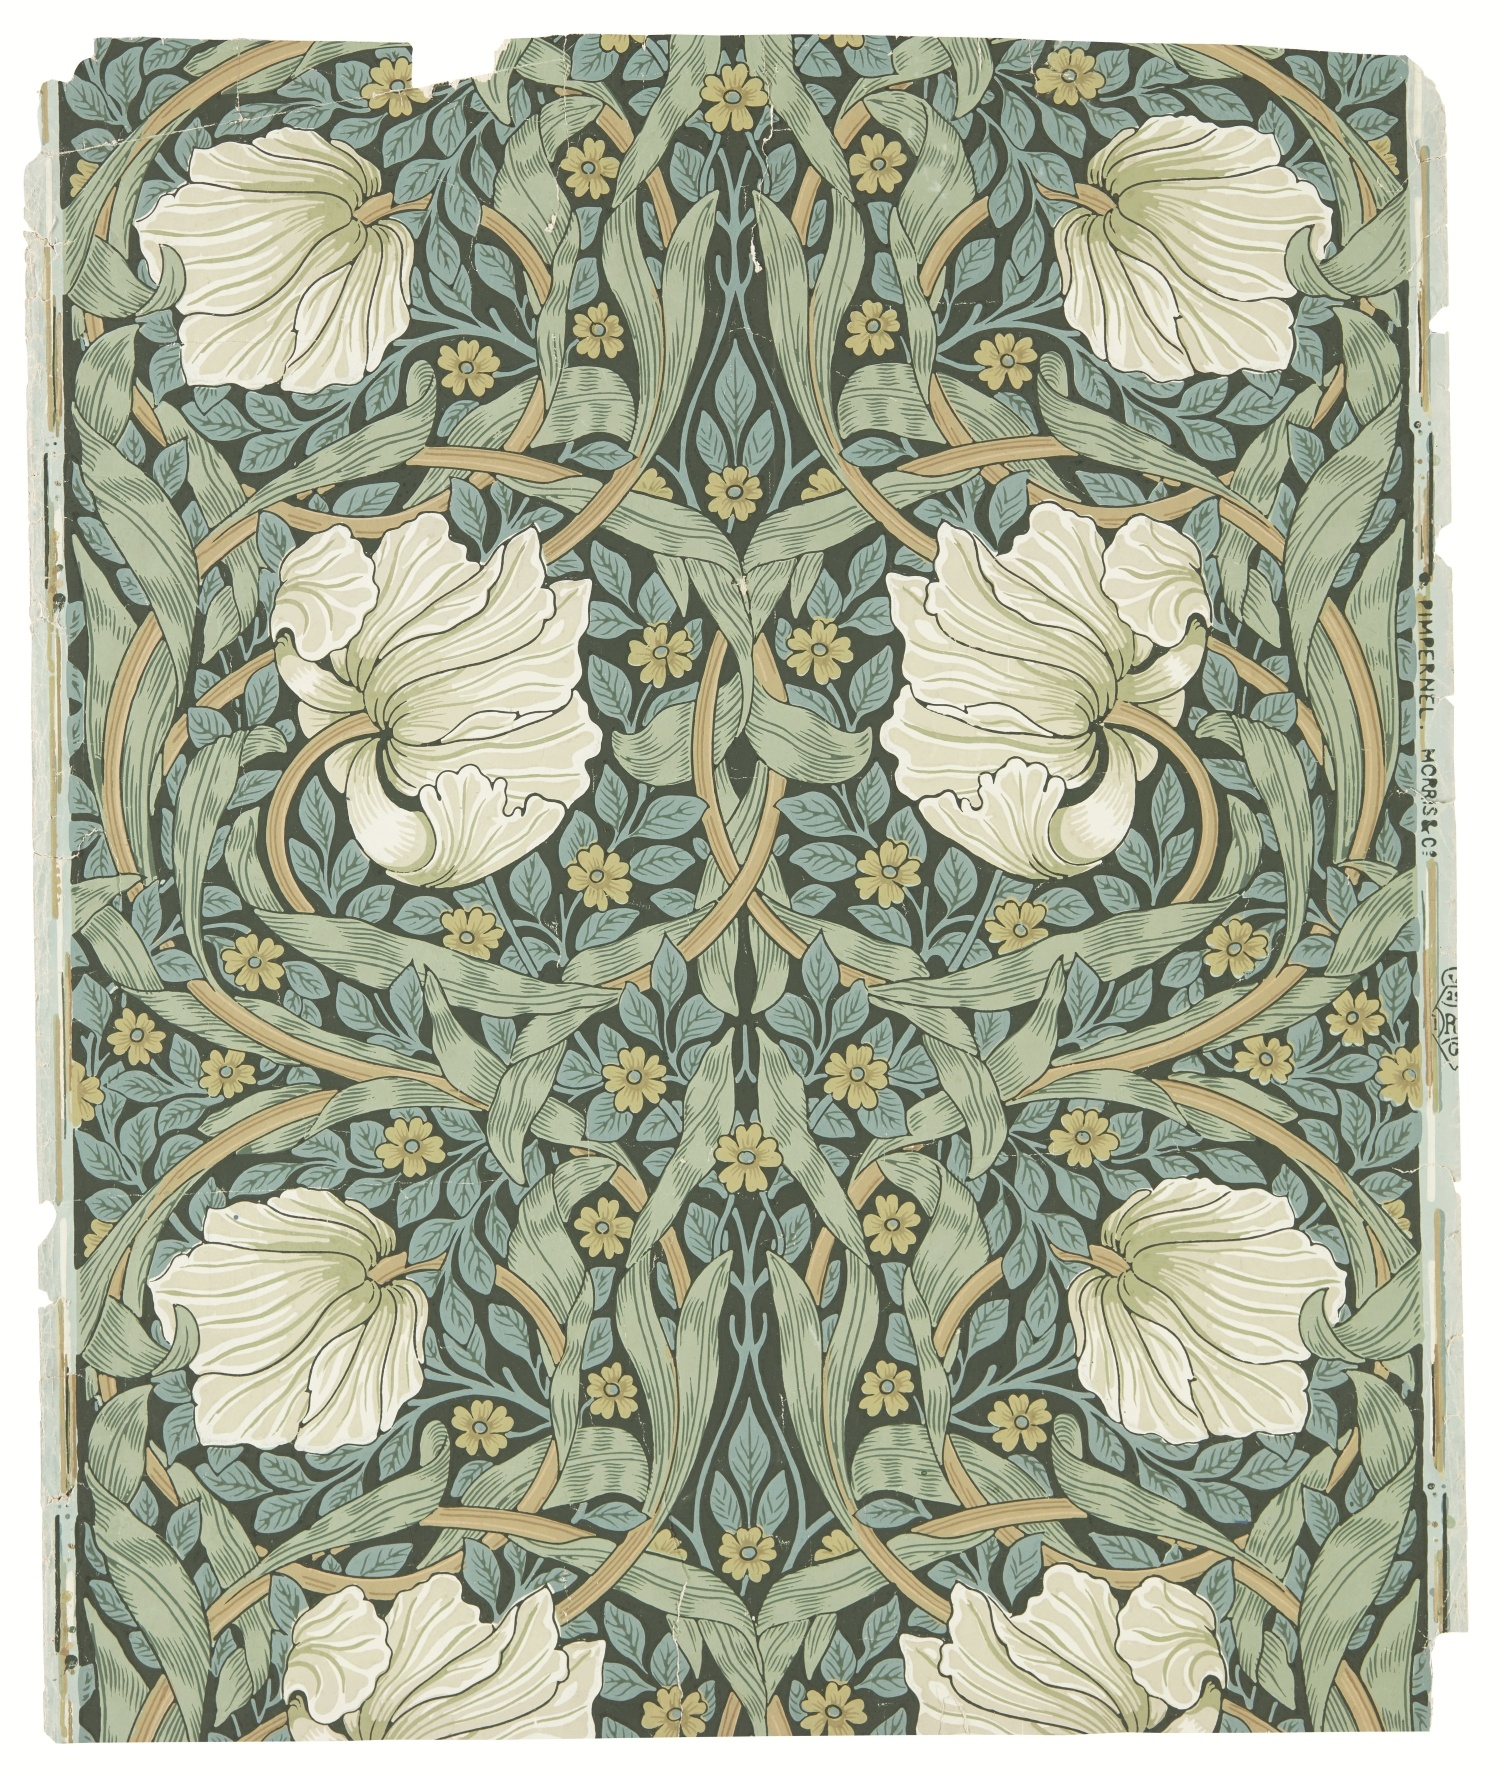 william morris_peacock